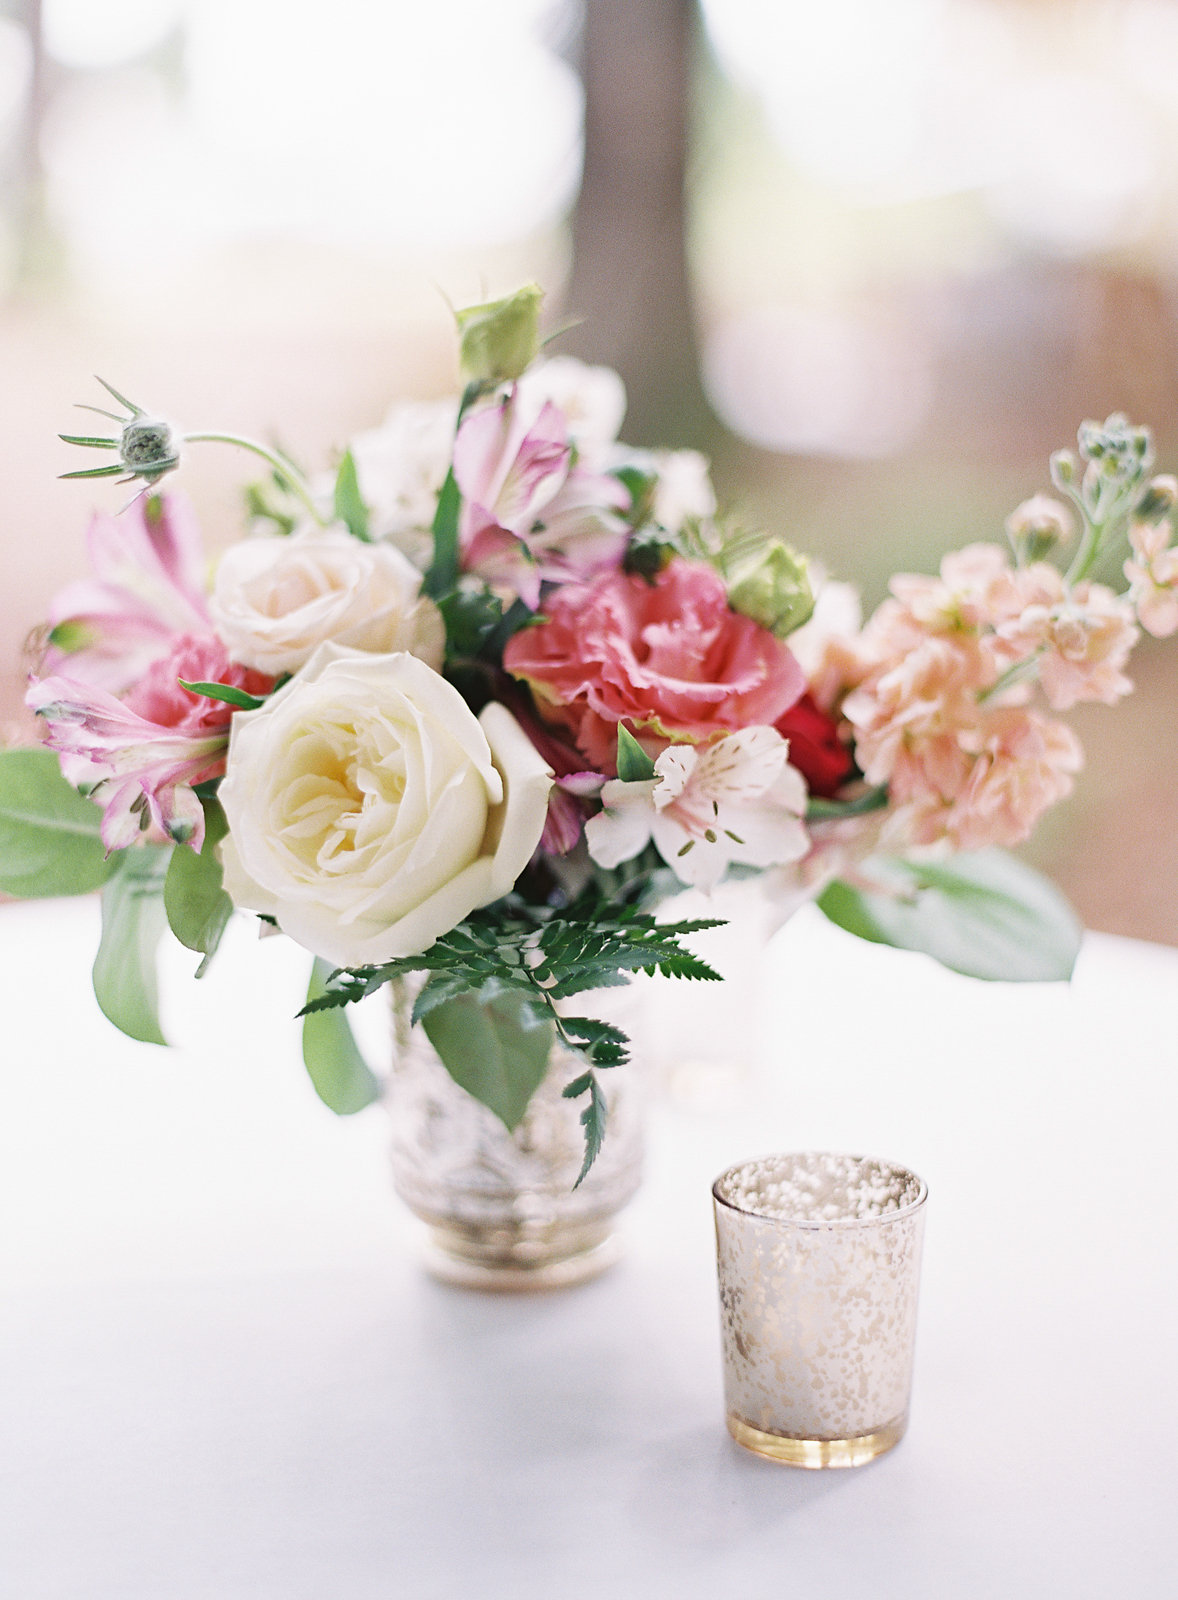 Simply-Charming-Socials_Atlanta-Wedding-Planner_Money-Saving-Wedding-Flowers_2.jpg